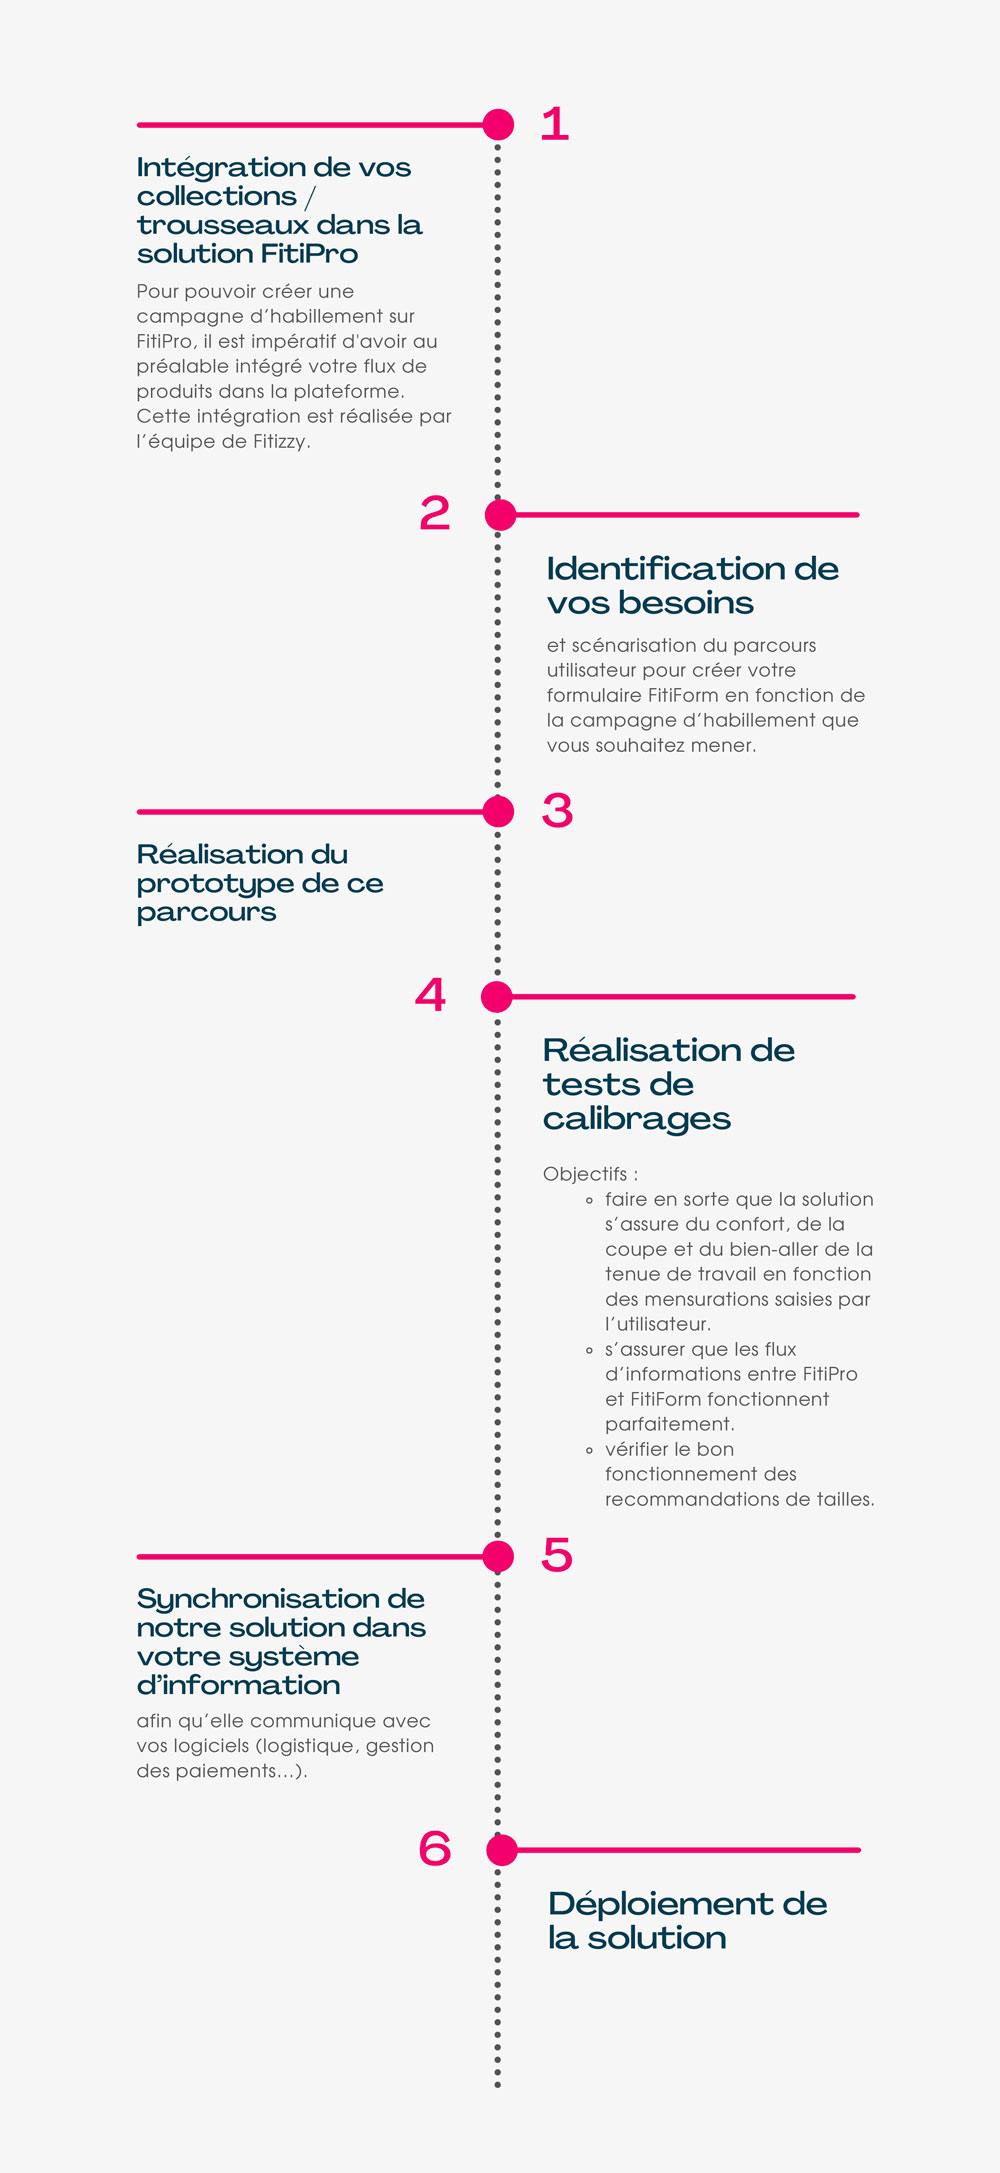 fitipro-integration-collection-vetement-professionnel